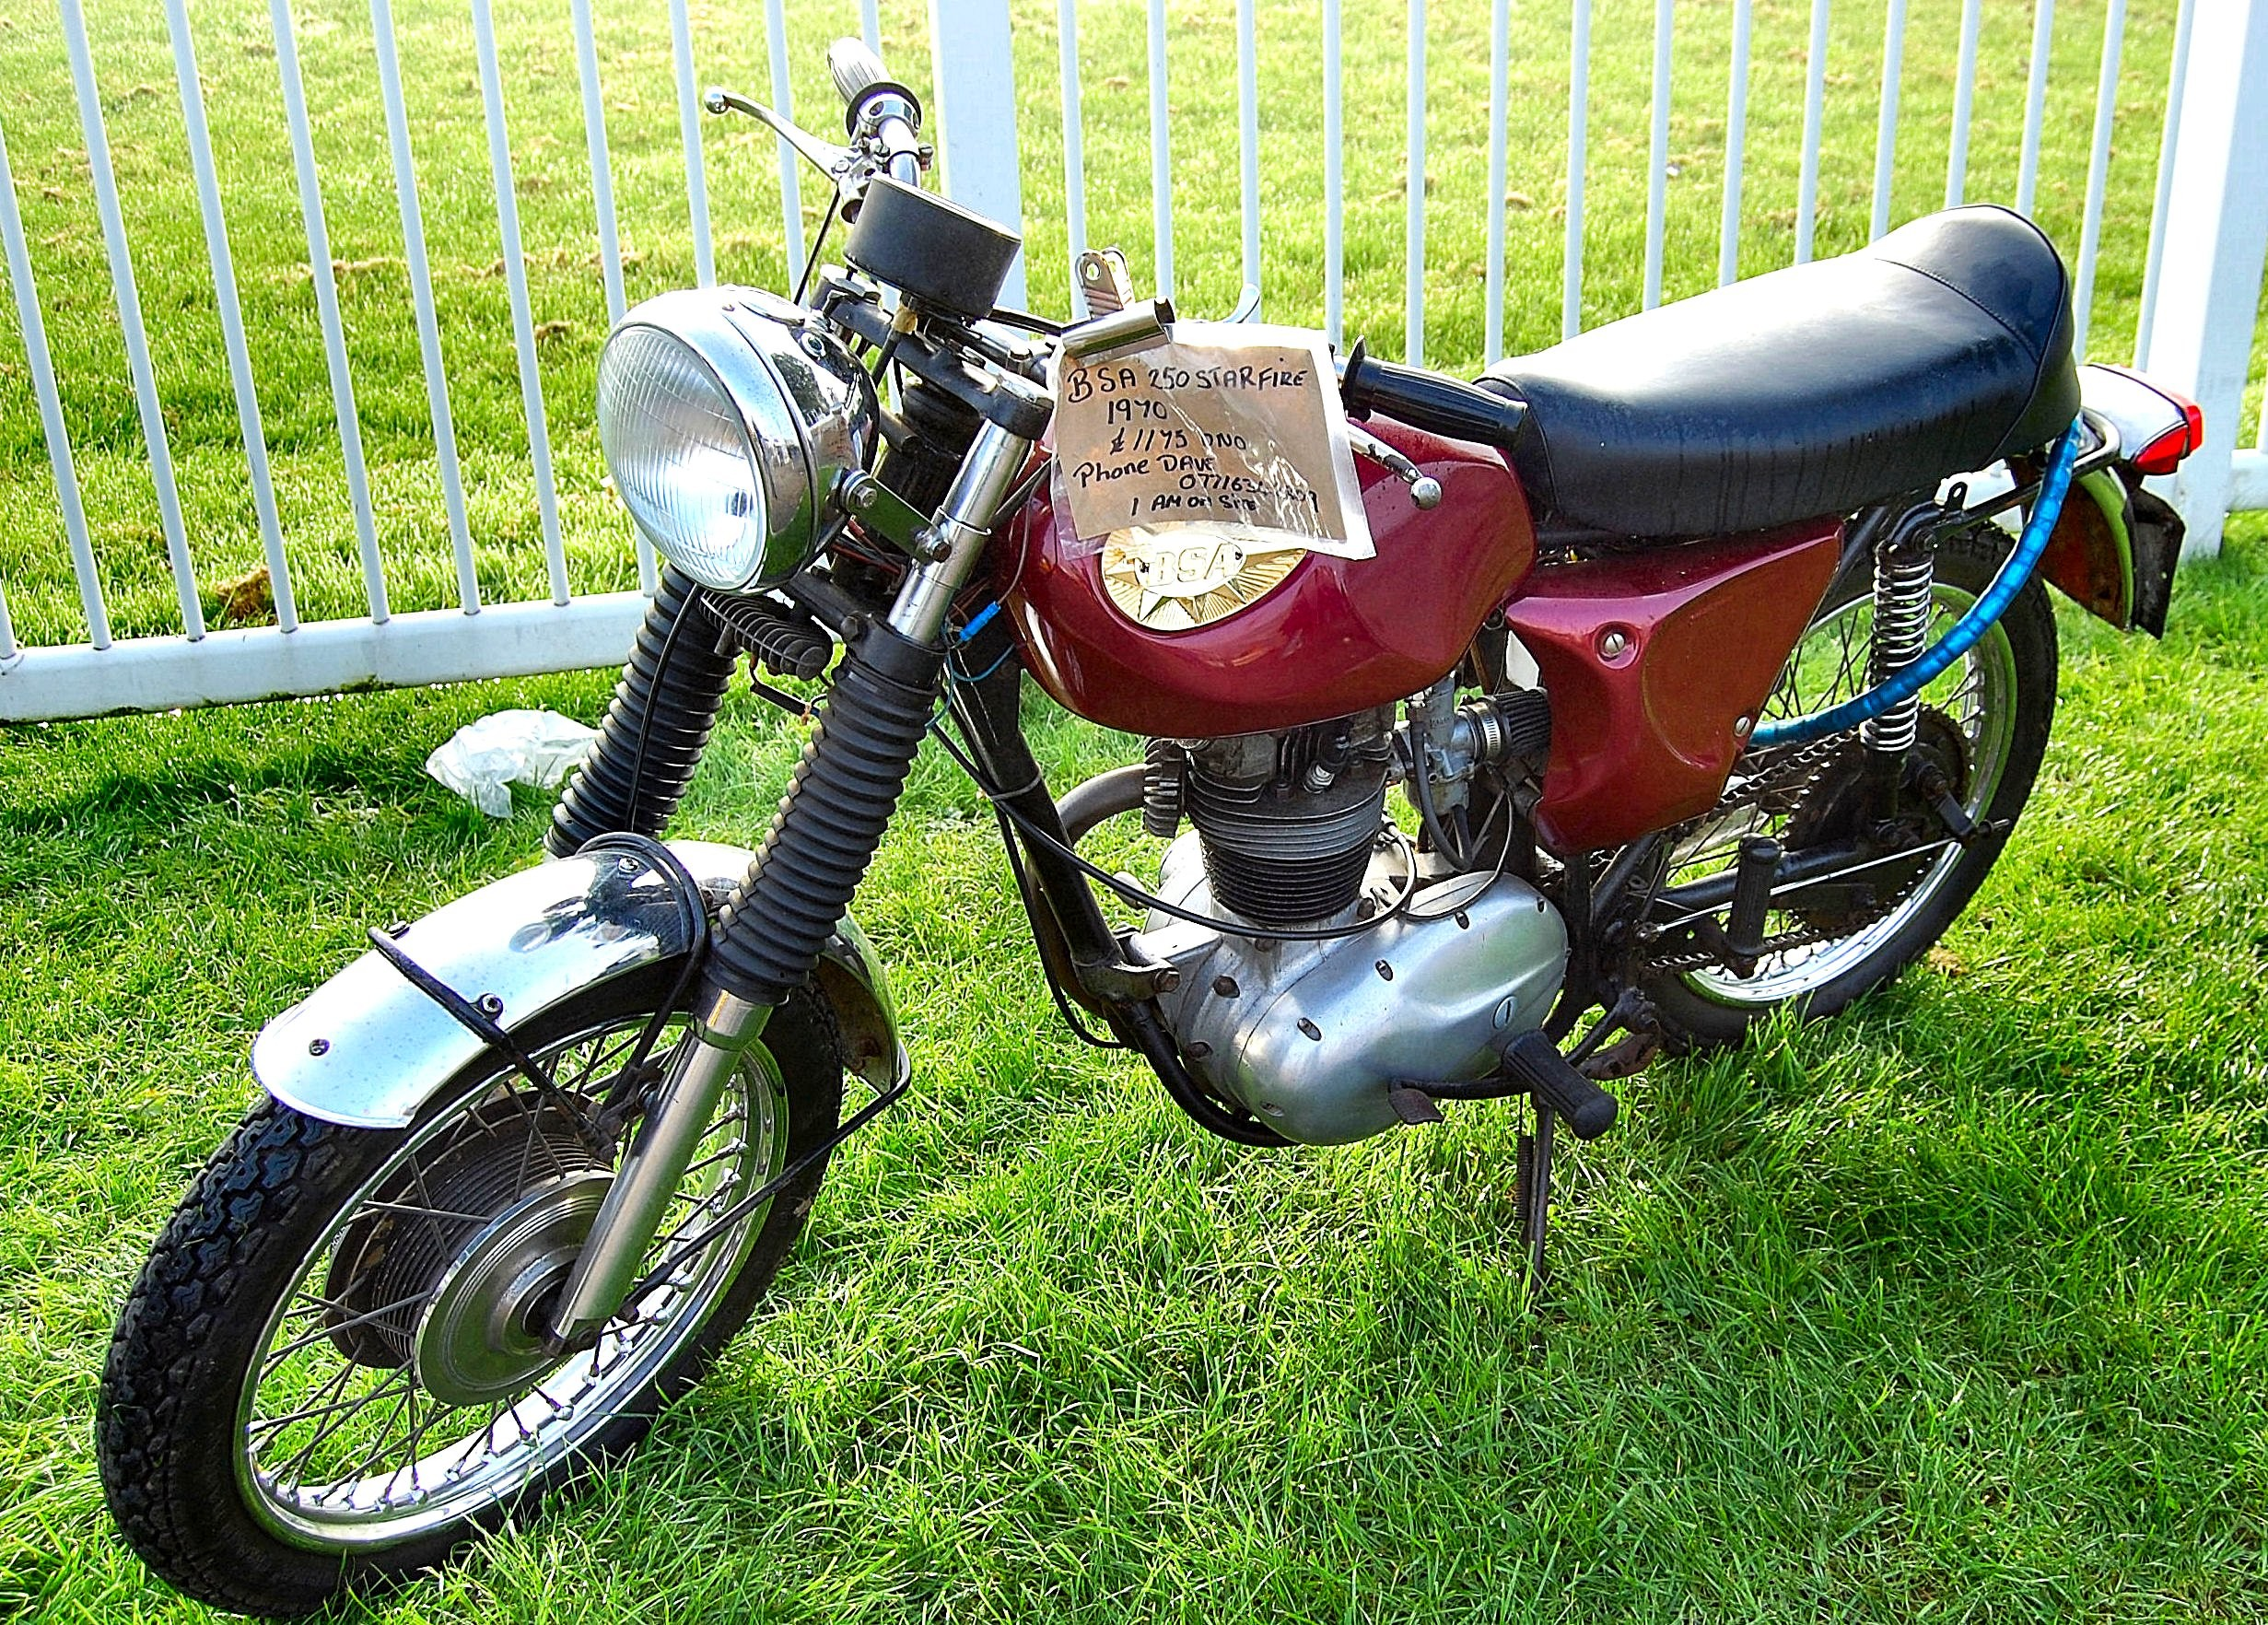 Bsa A65 Engine Diagram M44 Series Wiring Diagrams Mark S Tech File Flickr Ronsaunders47 C15 250 Cc Starfire Of